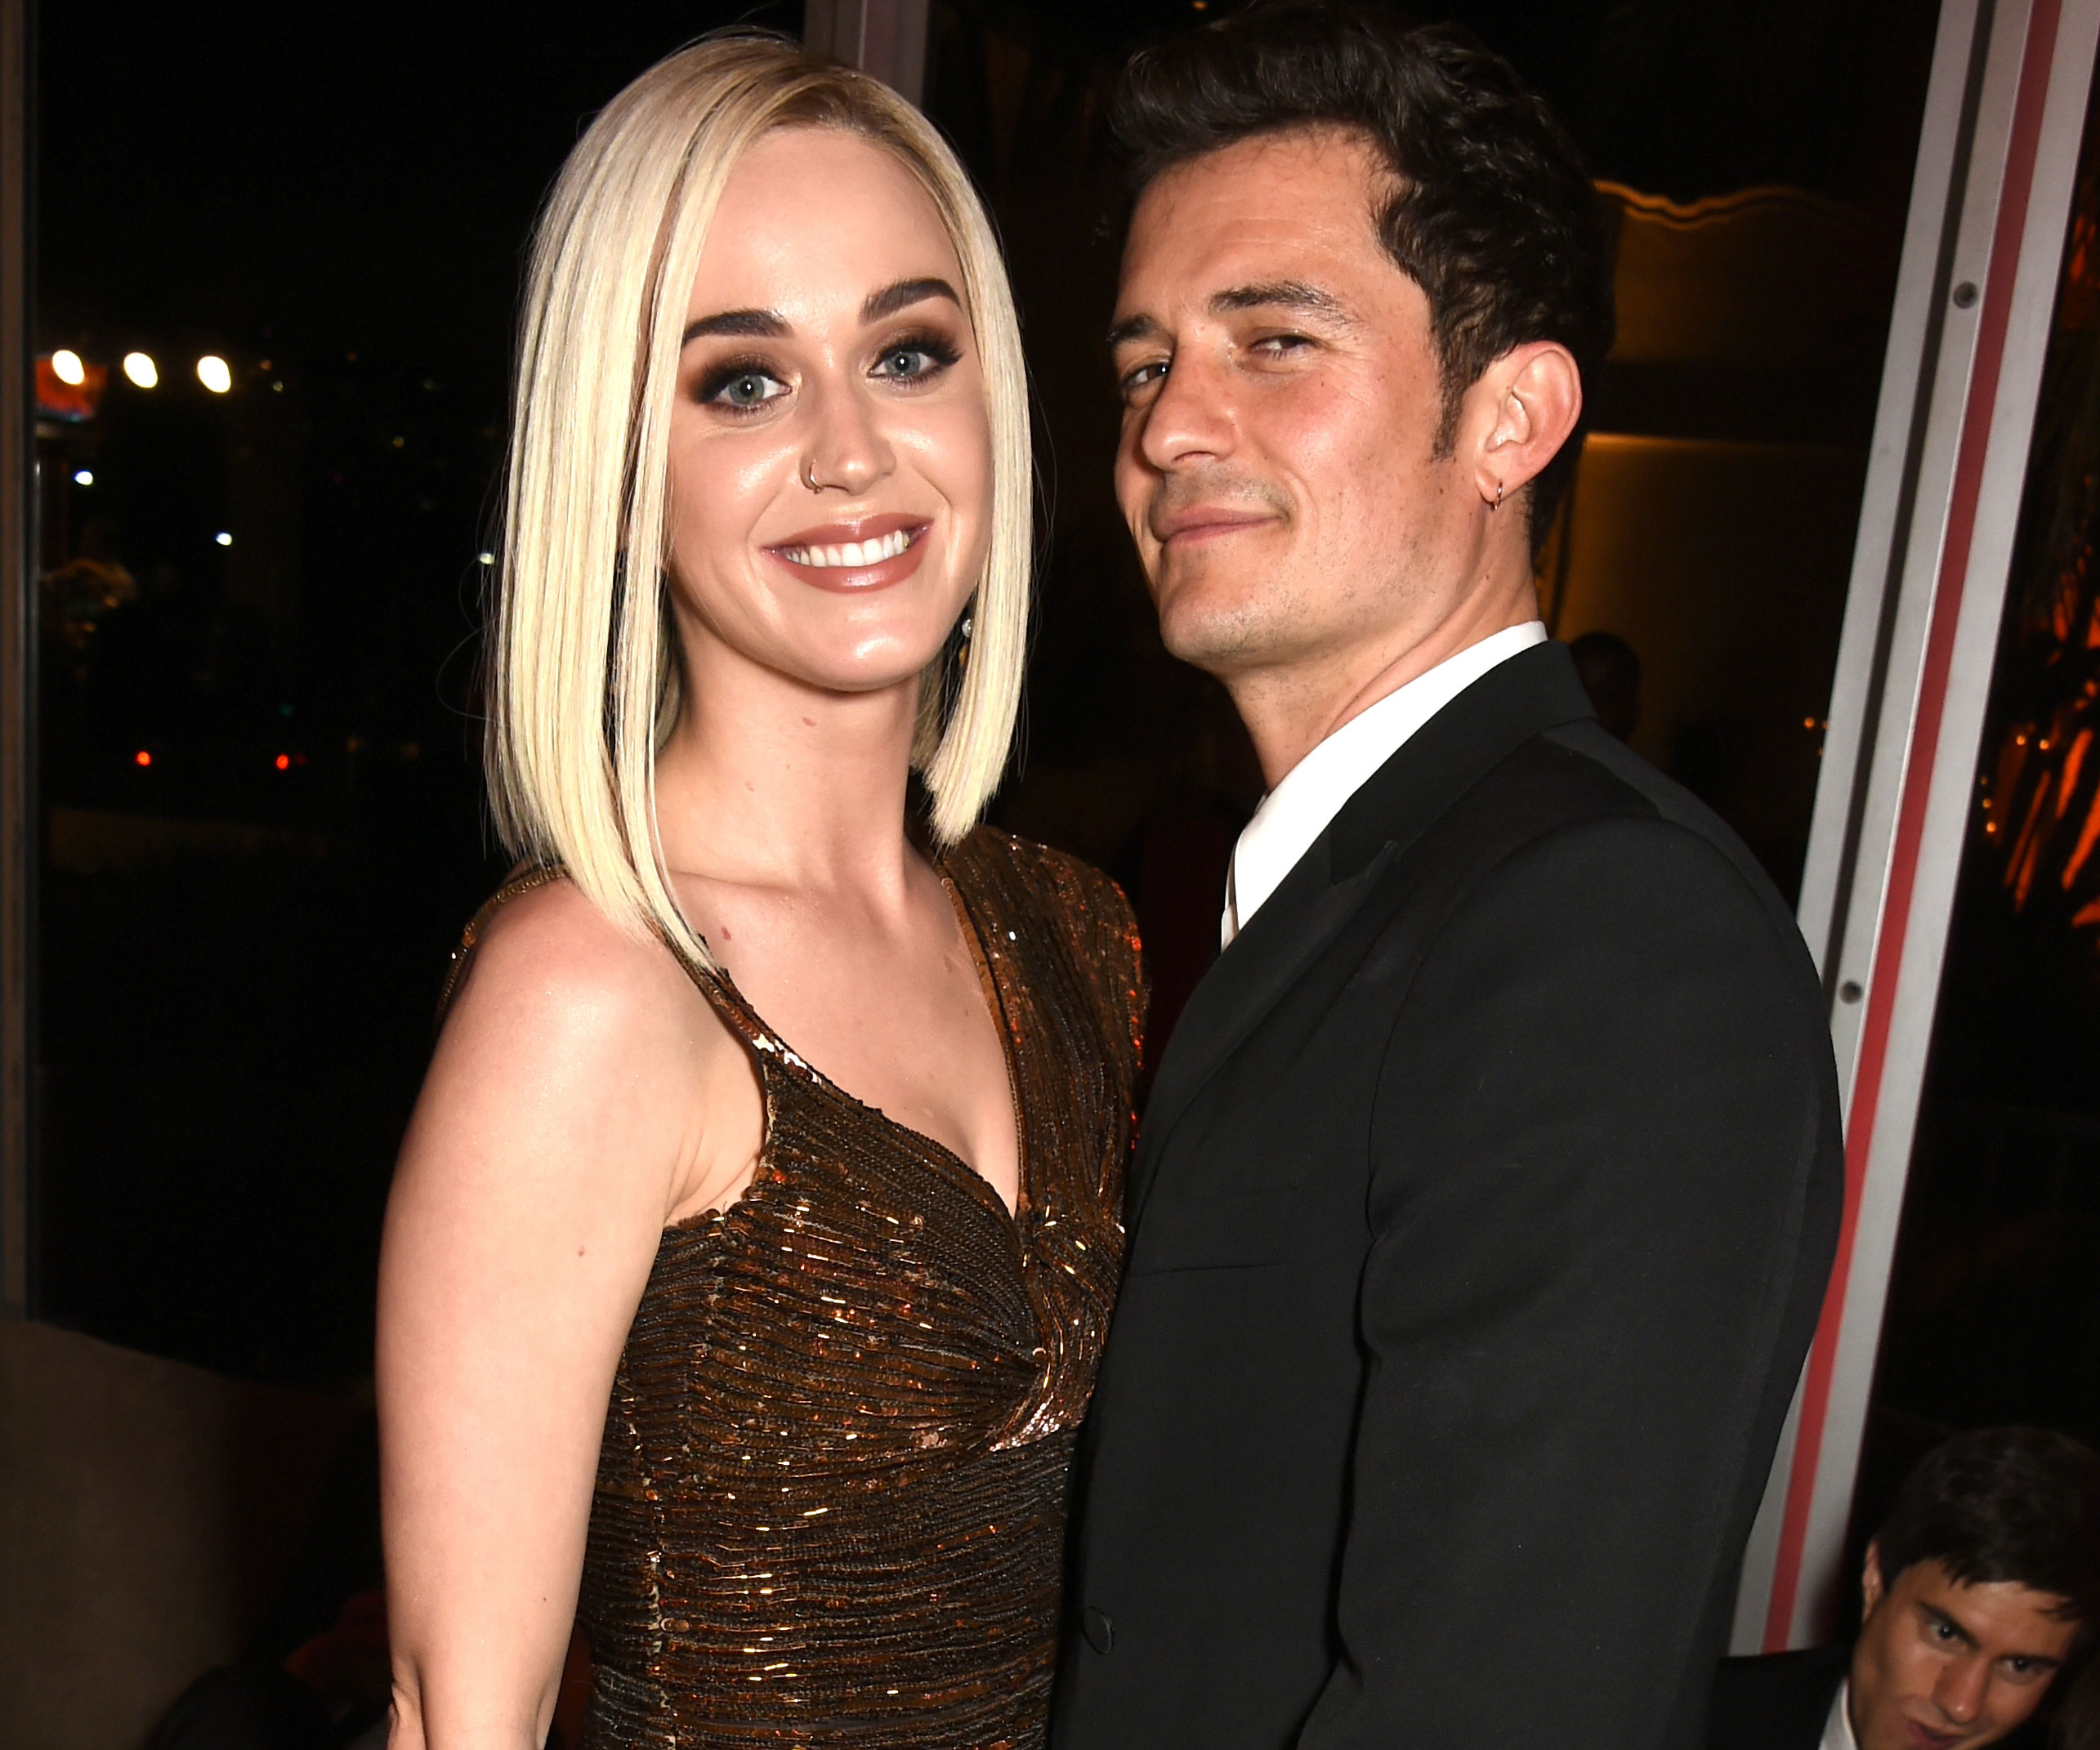 Katy Perry and Orlando Bloom vacation together